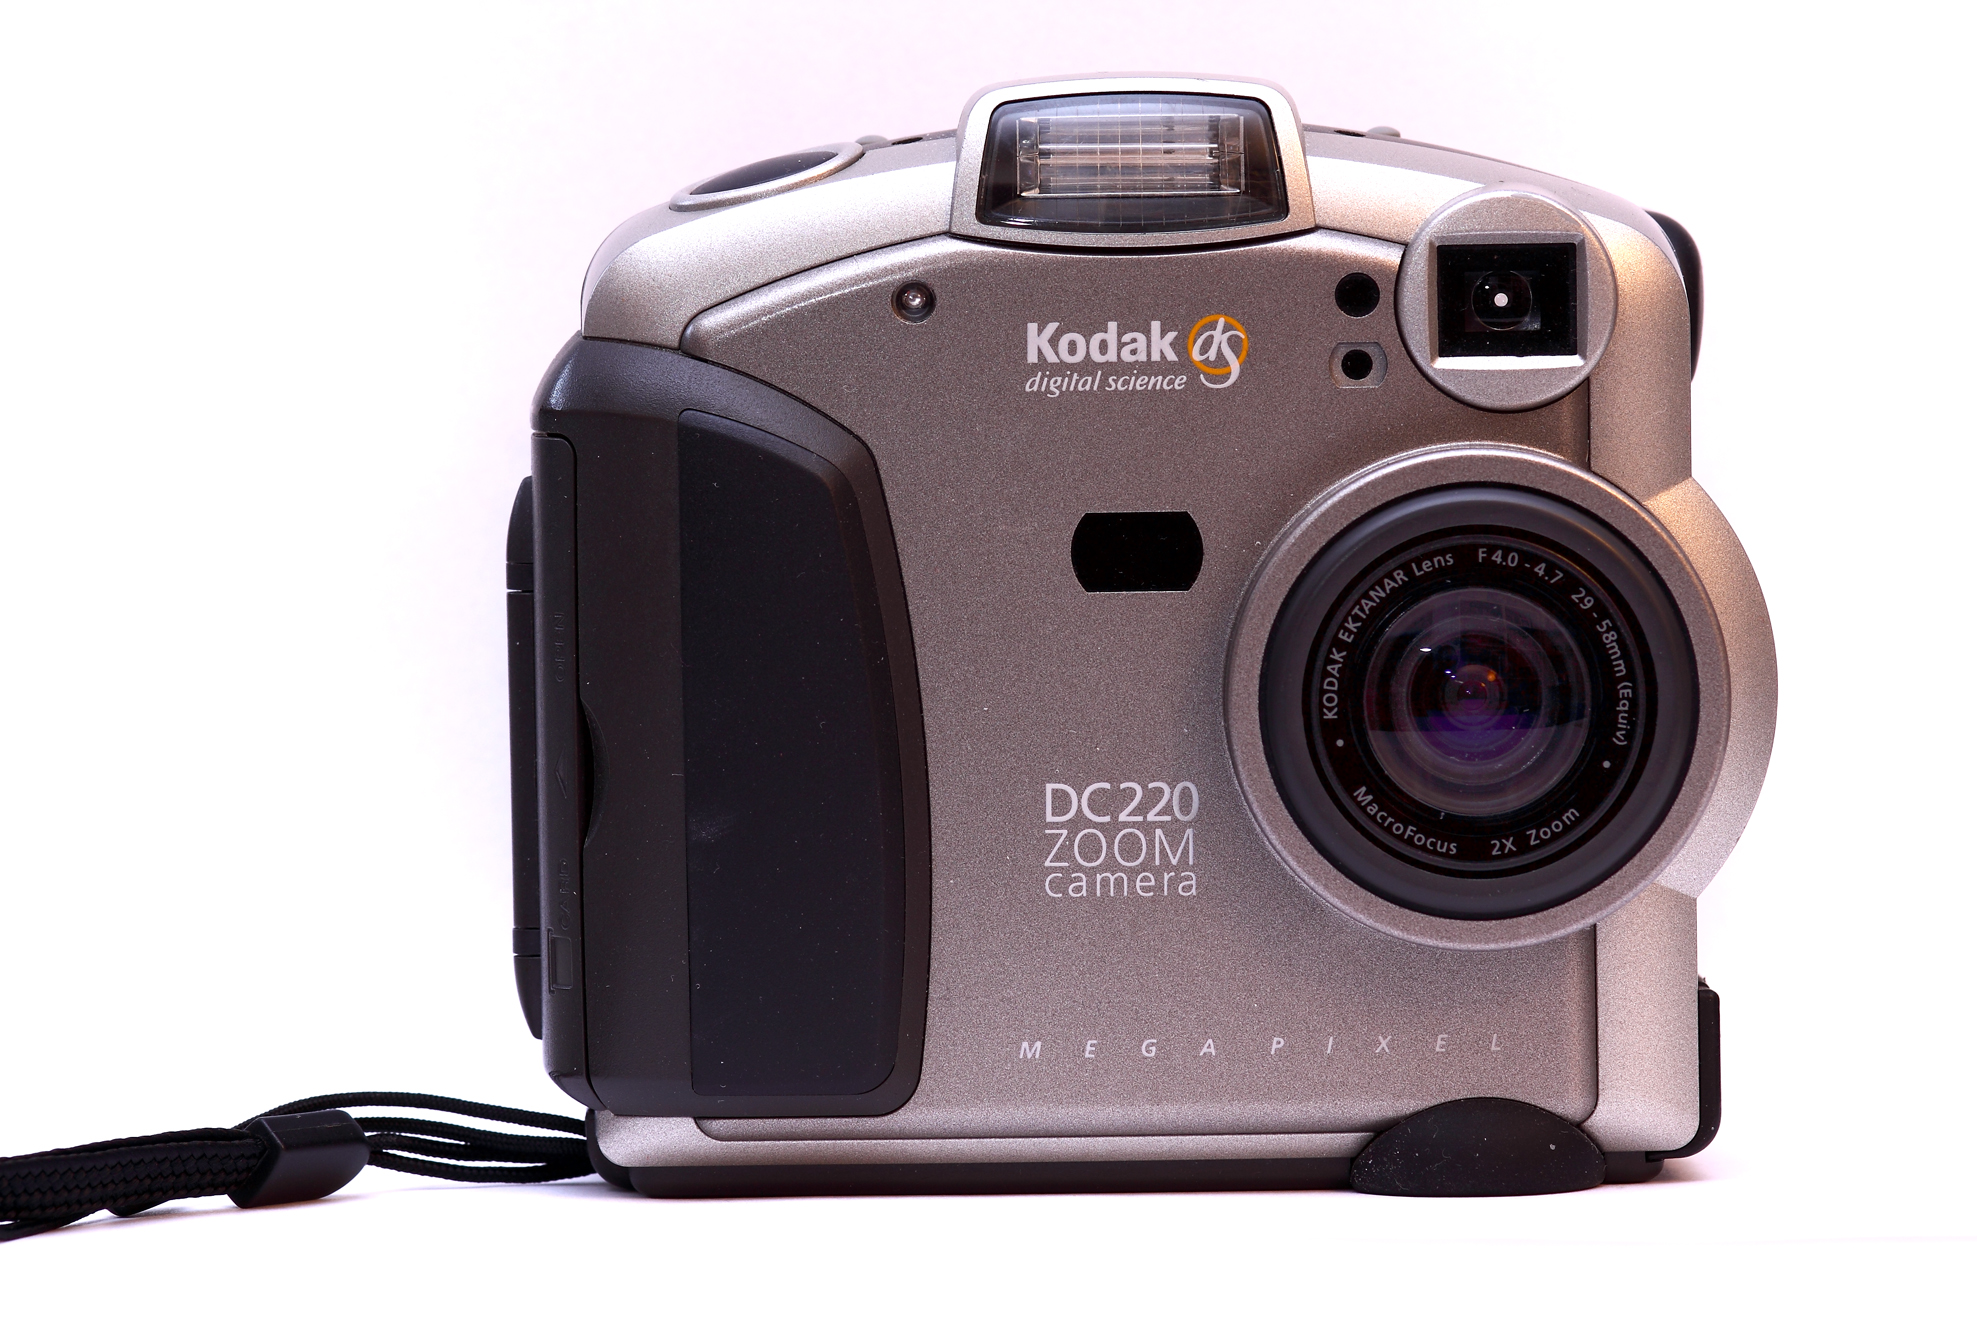 KODAK DC220 WINDOWS VISTA DRIVER